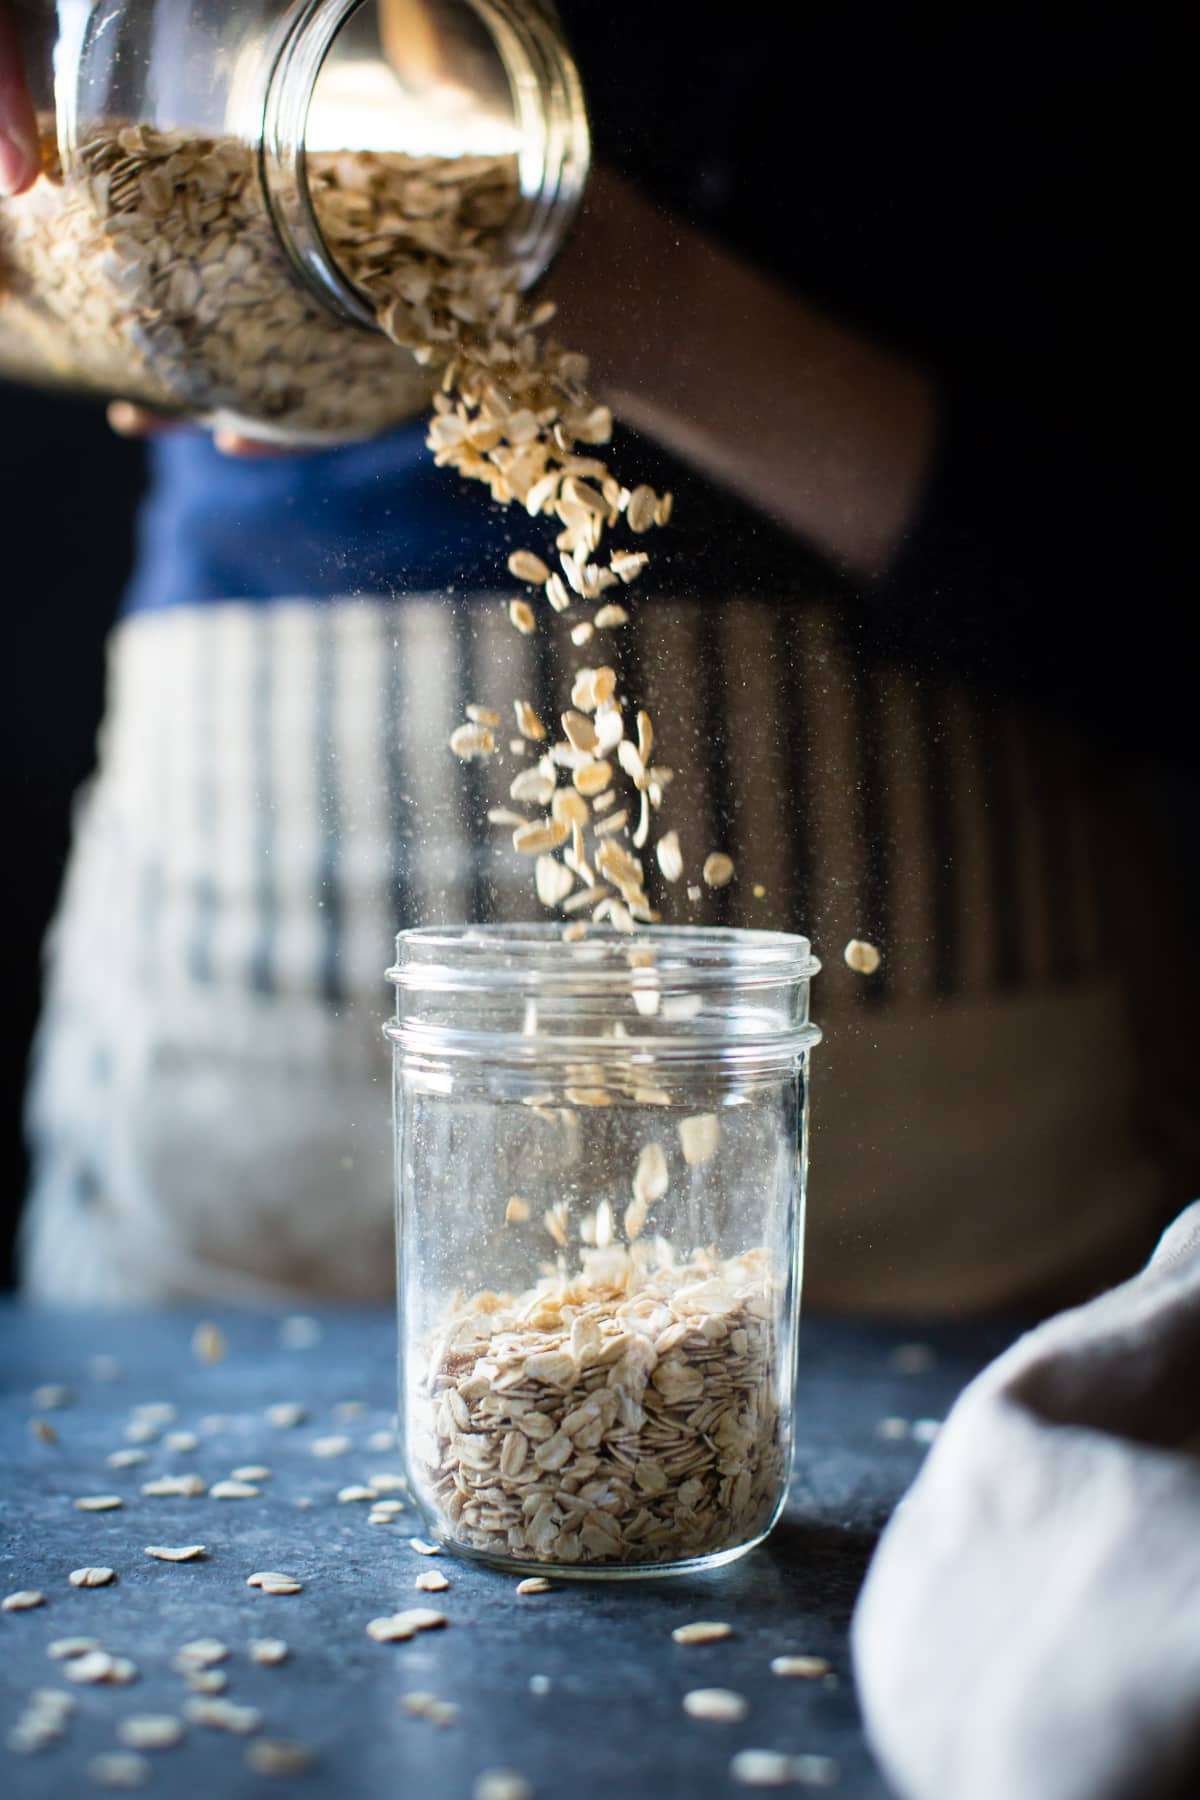 oats poured into jar